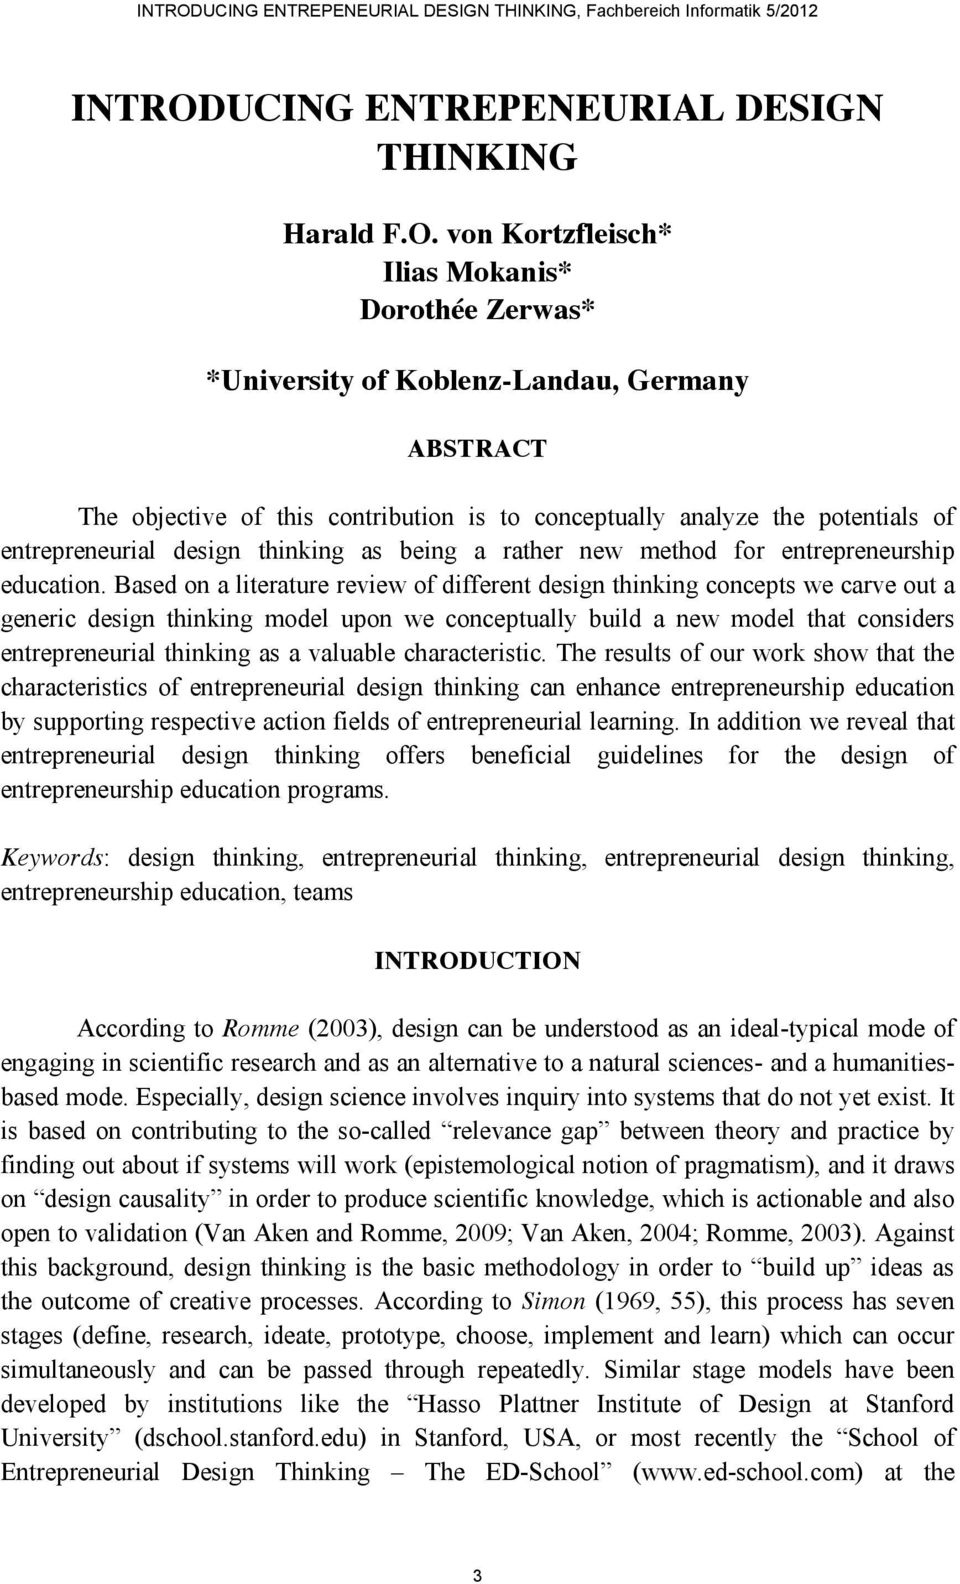 von Kortzfleisch* Ilias Mokanis* Dorothée Zerwas* *University of Koblenz-Landau, Germany ABSTRACT The objective of this contribution is to conceptually analyze the potentials of entrepreneurial